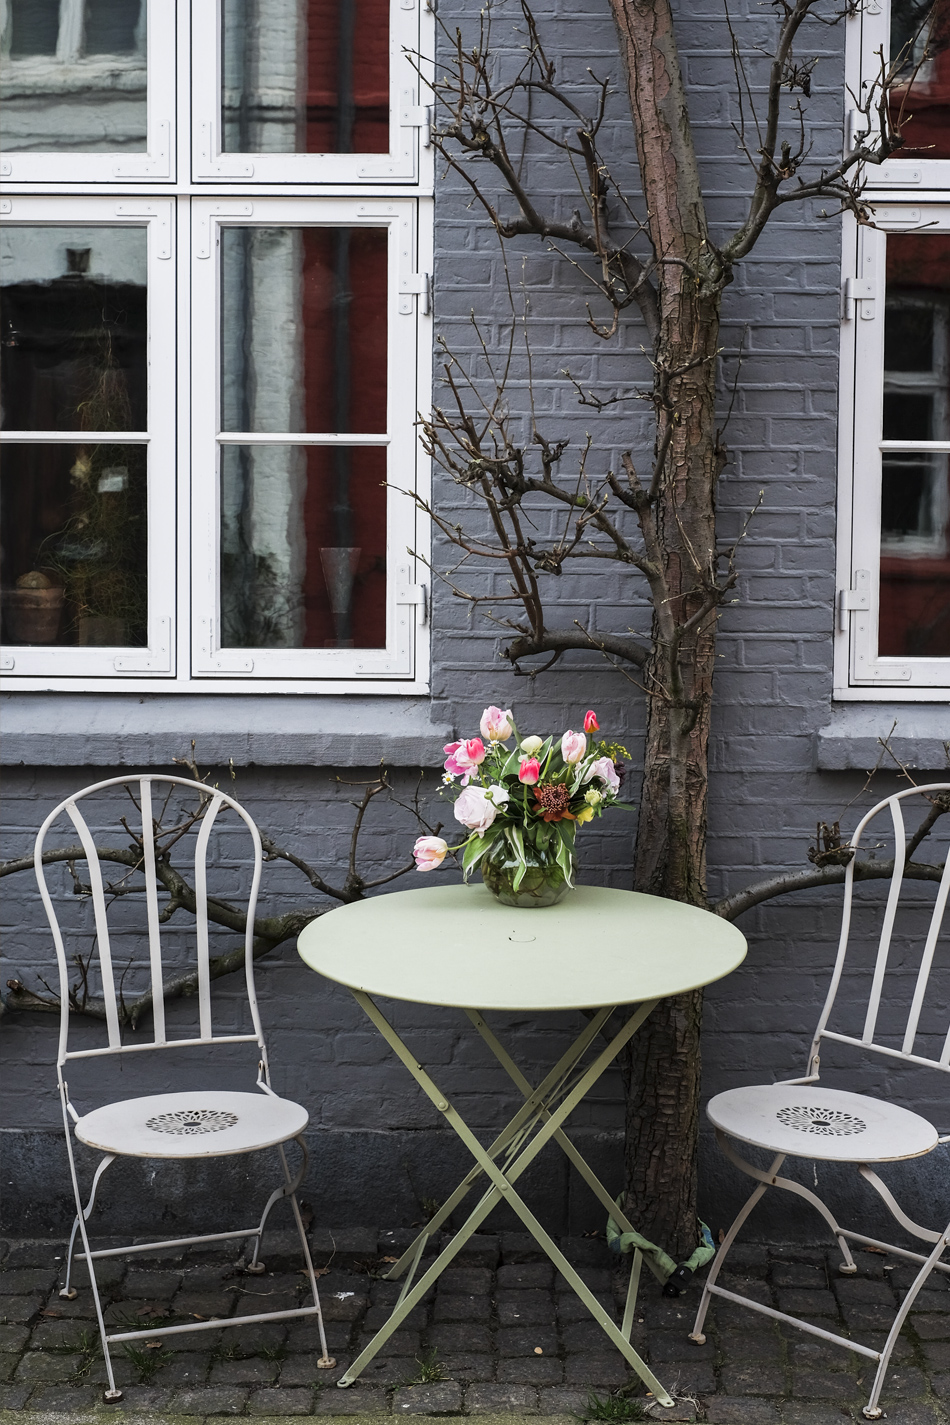 table and flowers on the streets of the Danish capital